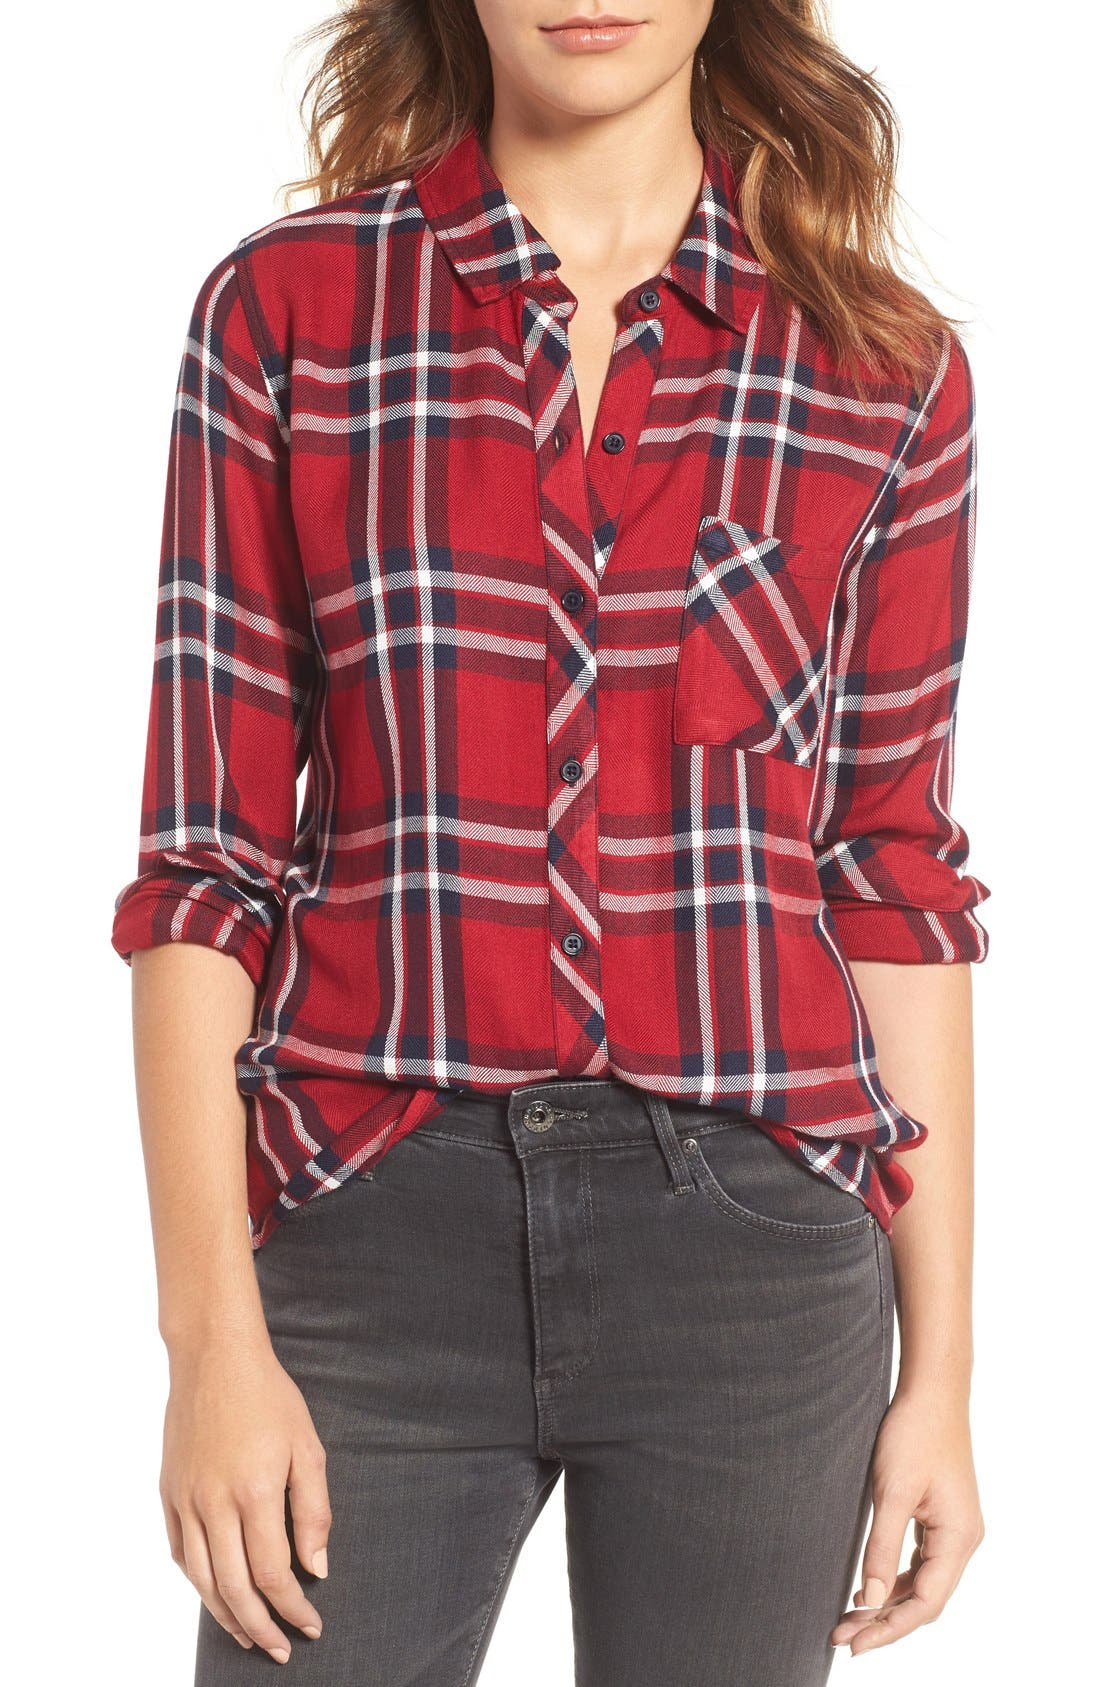 Plaid Tops